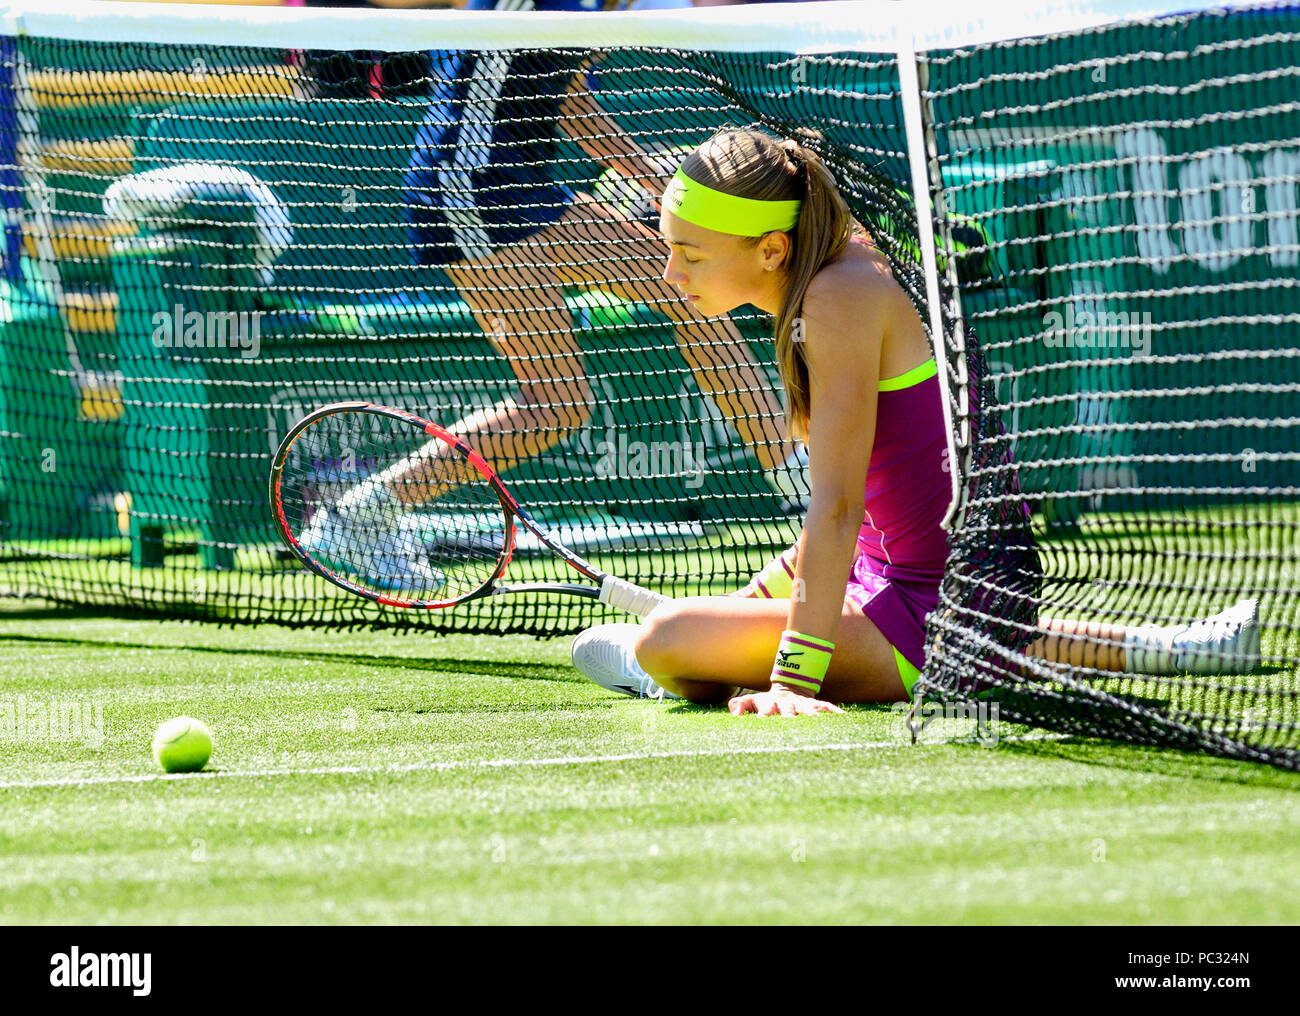 Aleksandra Krunic (Slovakia) after slipping into the net at the Nature Valley International, Eastbourne 26th June 2018 - Stock Image